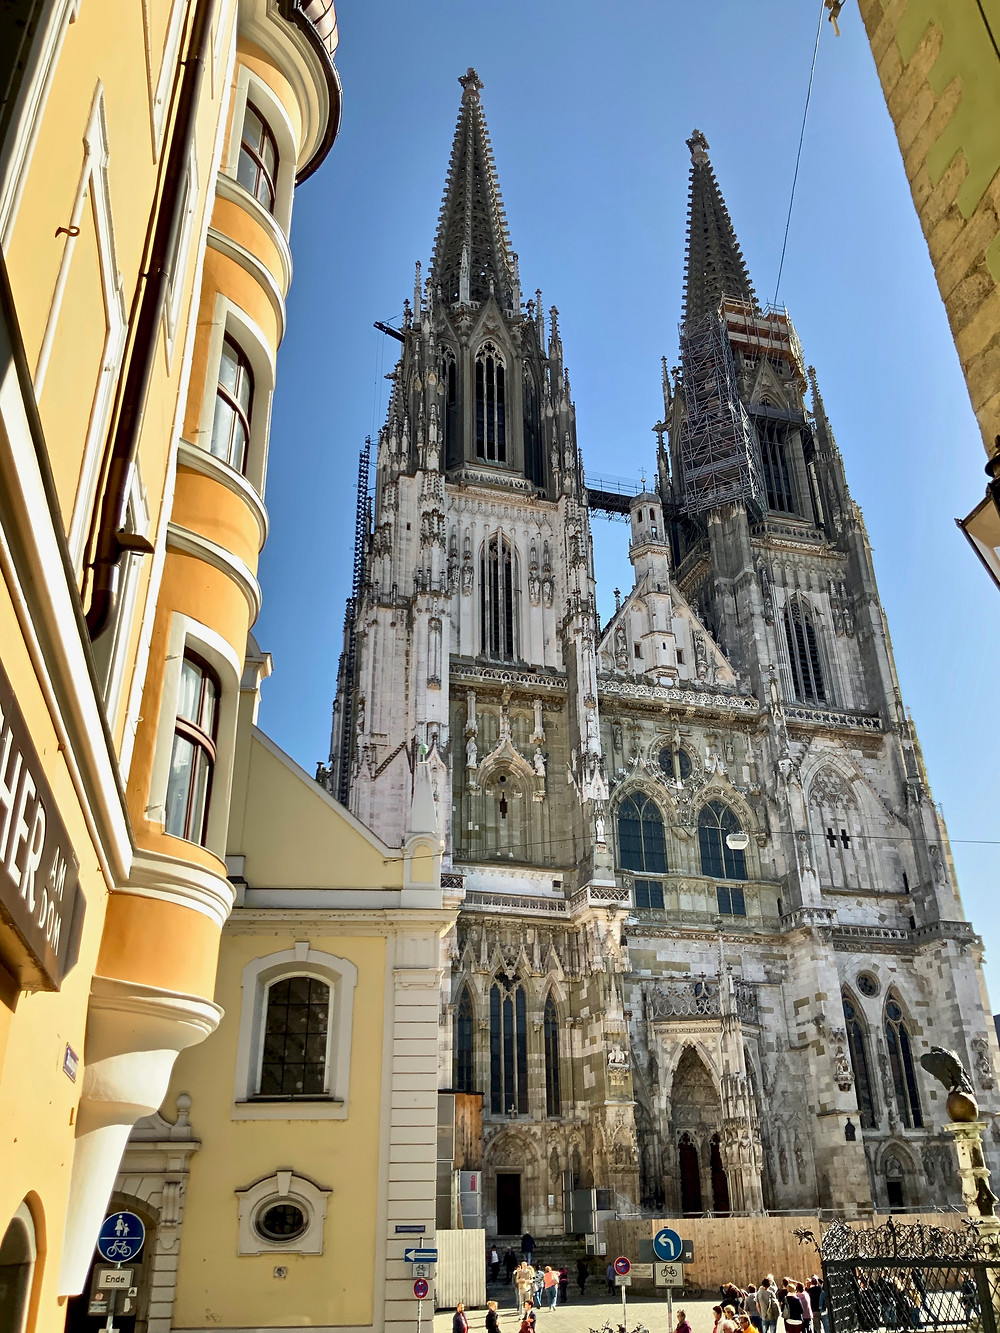 the towering Regensburg Cathedral